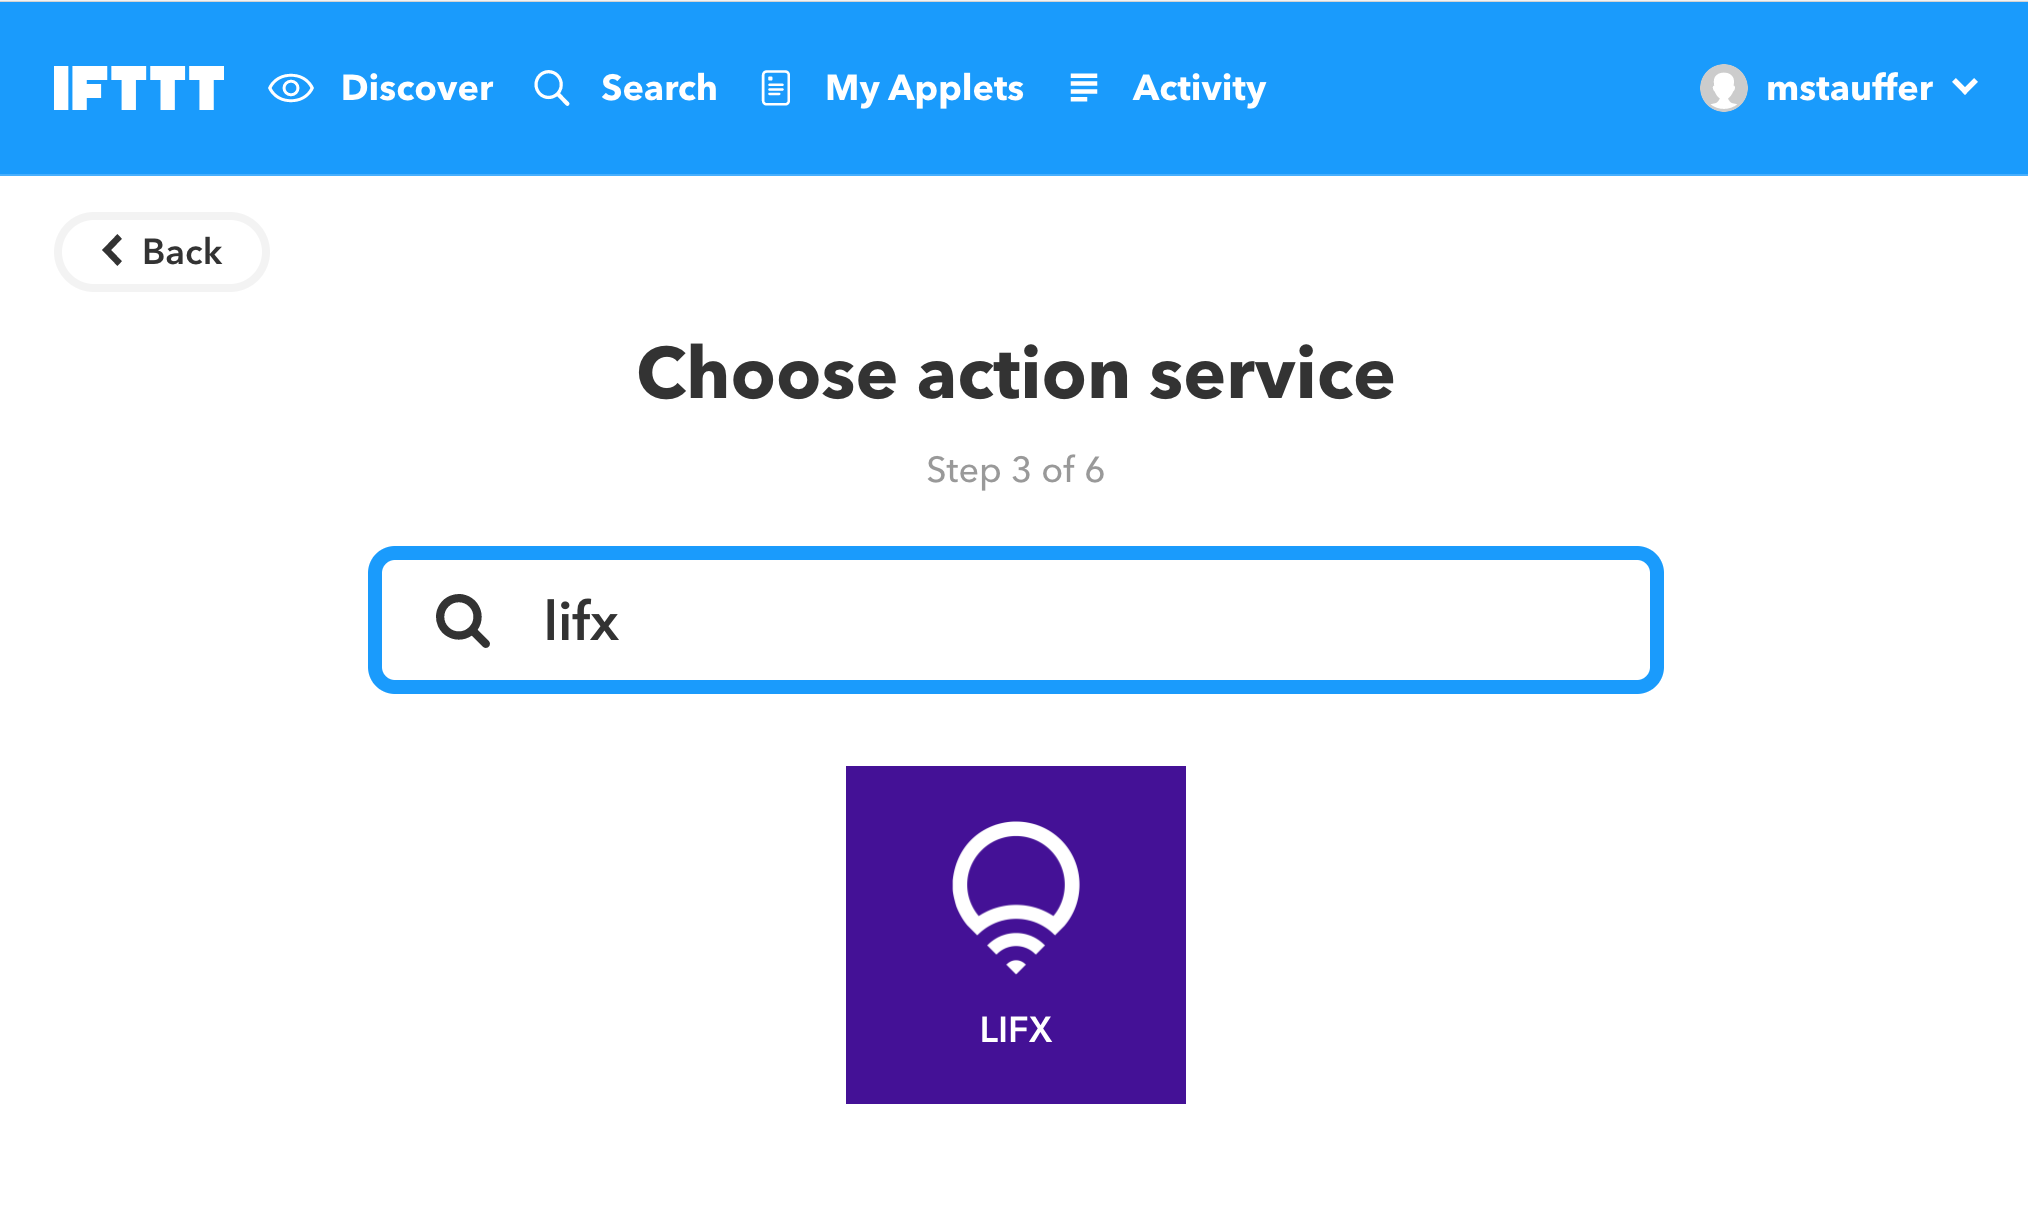 Choosing the LIFX 'that'  - lifx ifttt choose lifx - Controlling LIFX lights with your Laravel (or other PHP) applications